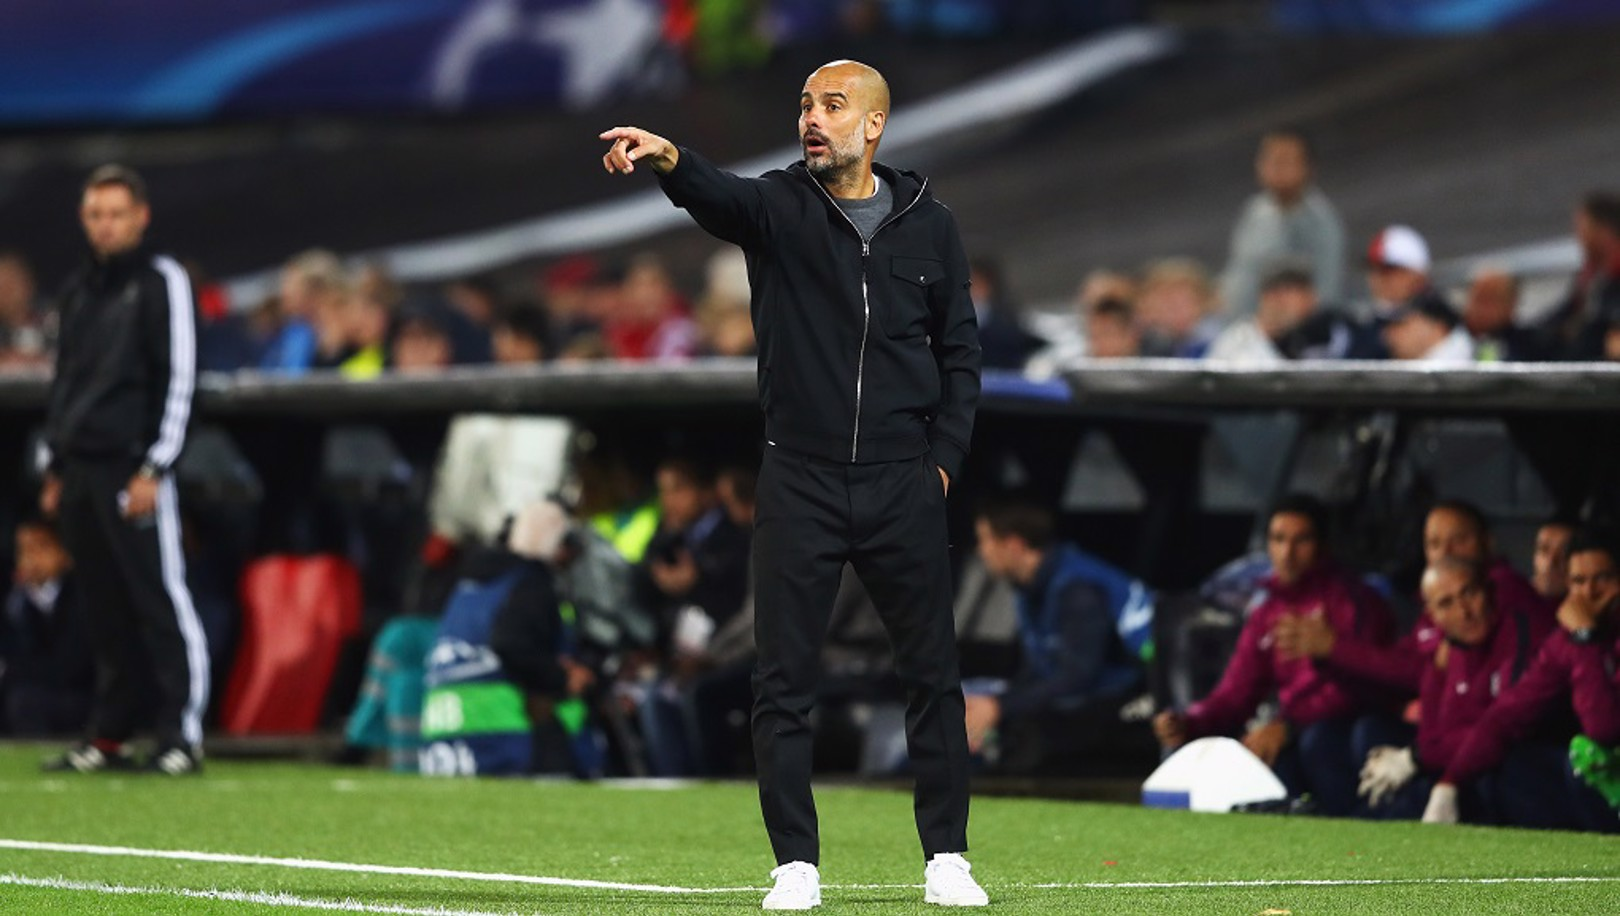 PEP: Happy with performance